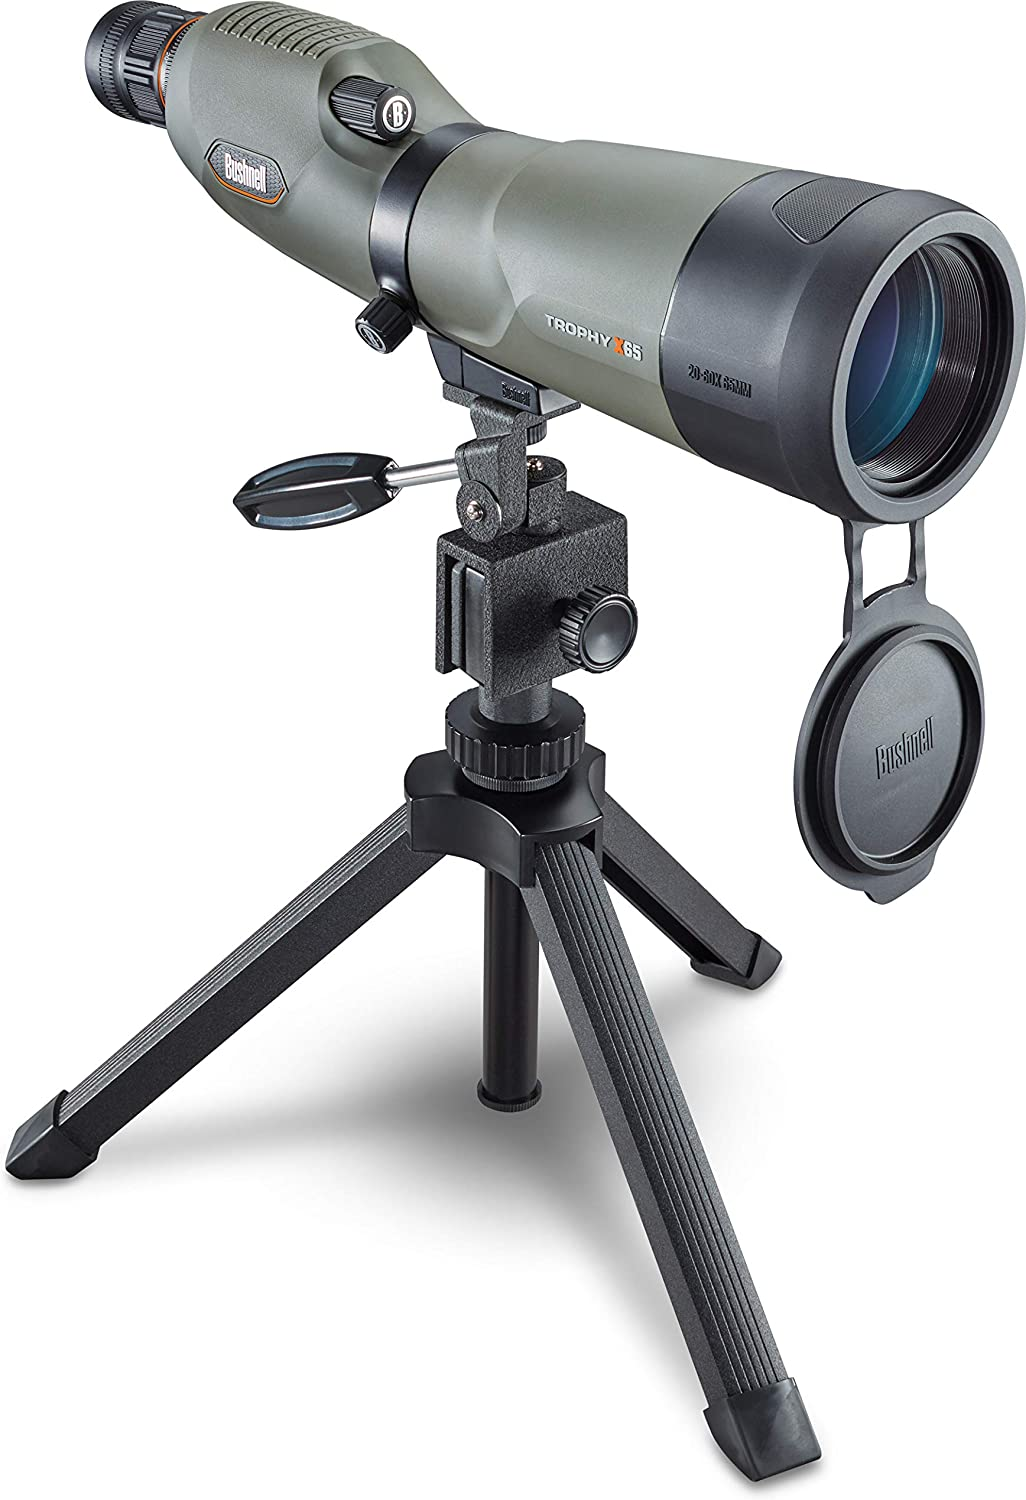 Bushnell Trophy Xtreme Spotting Scope Review